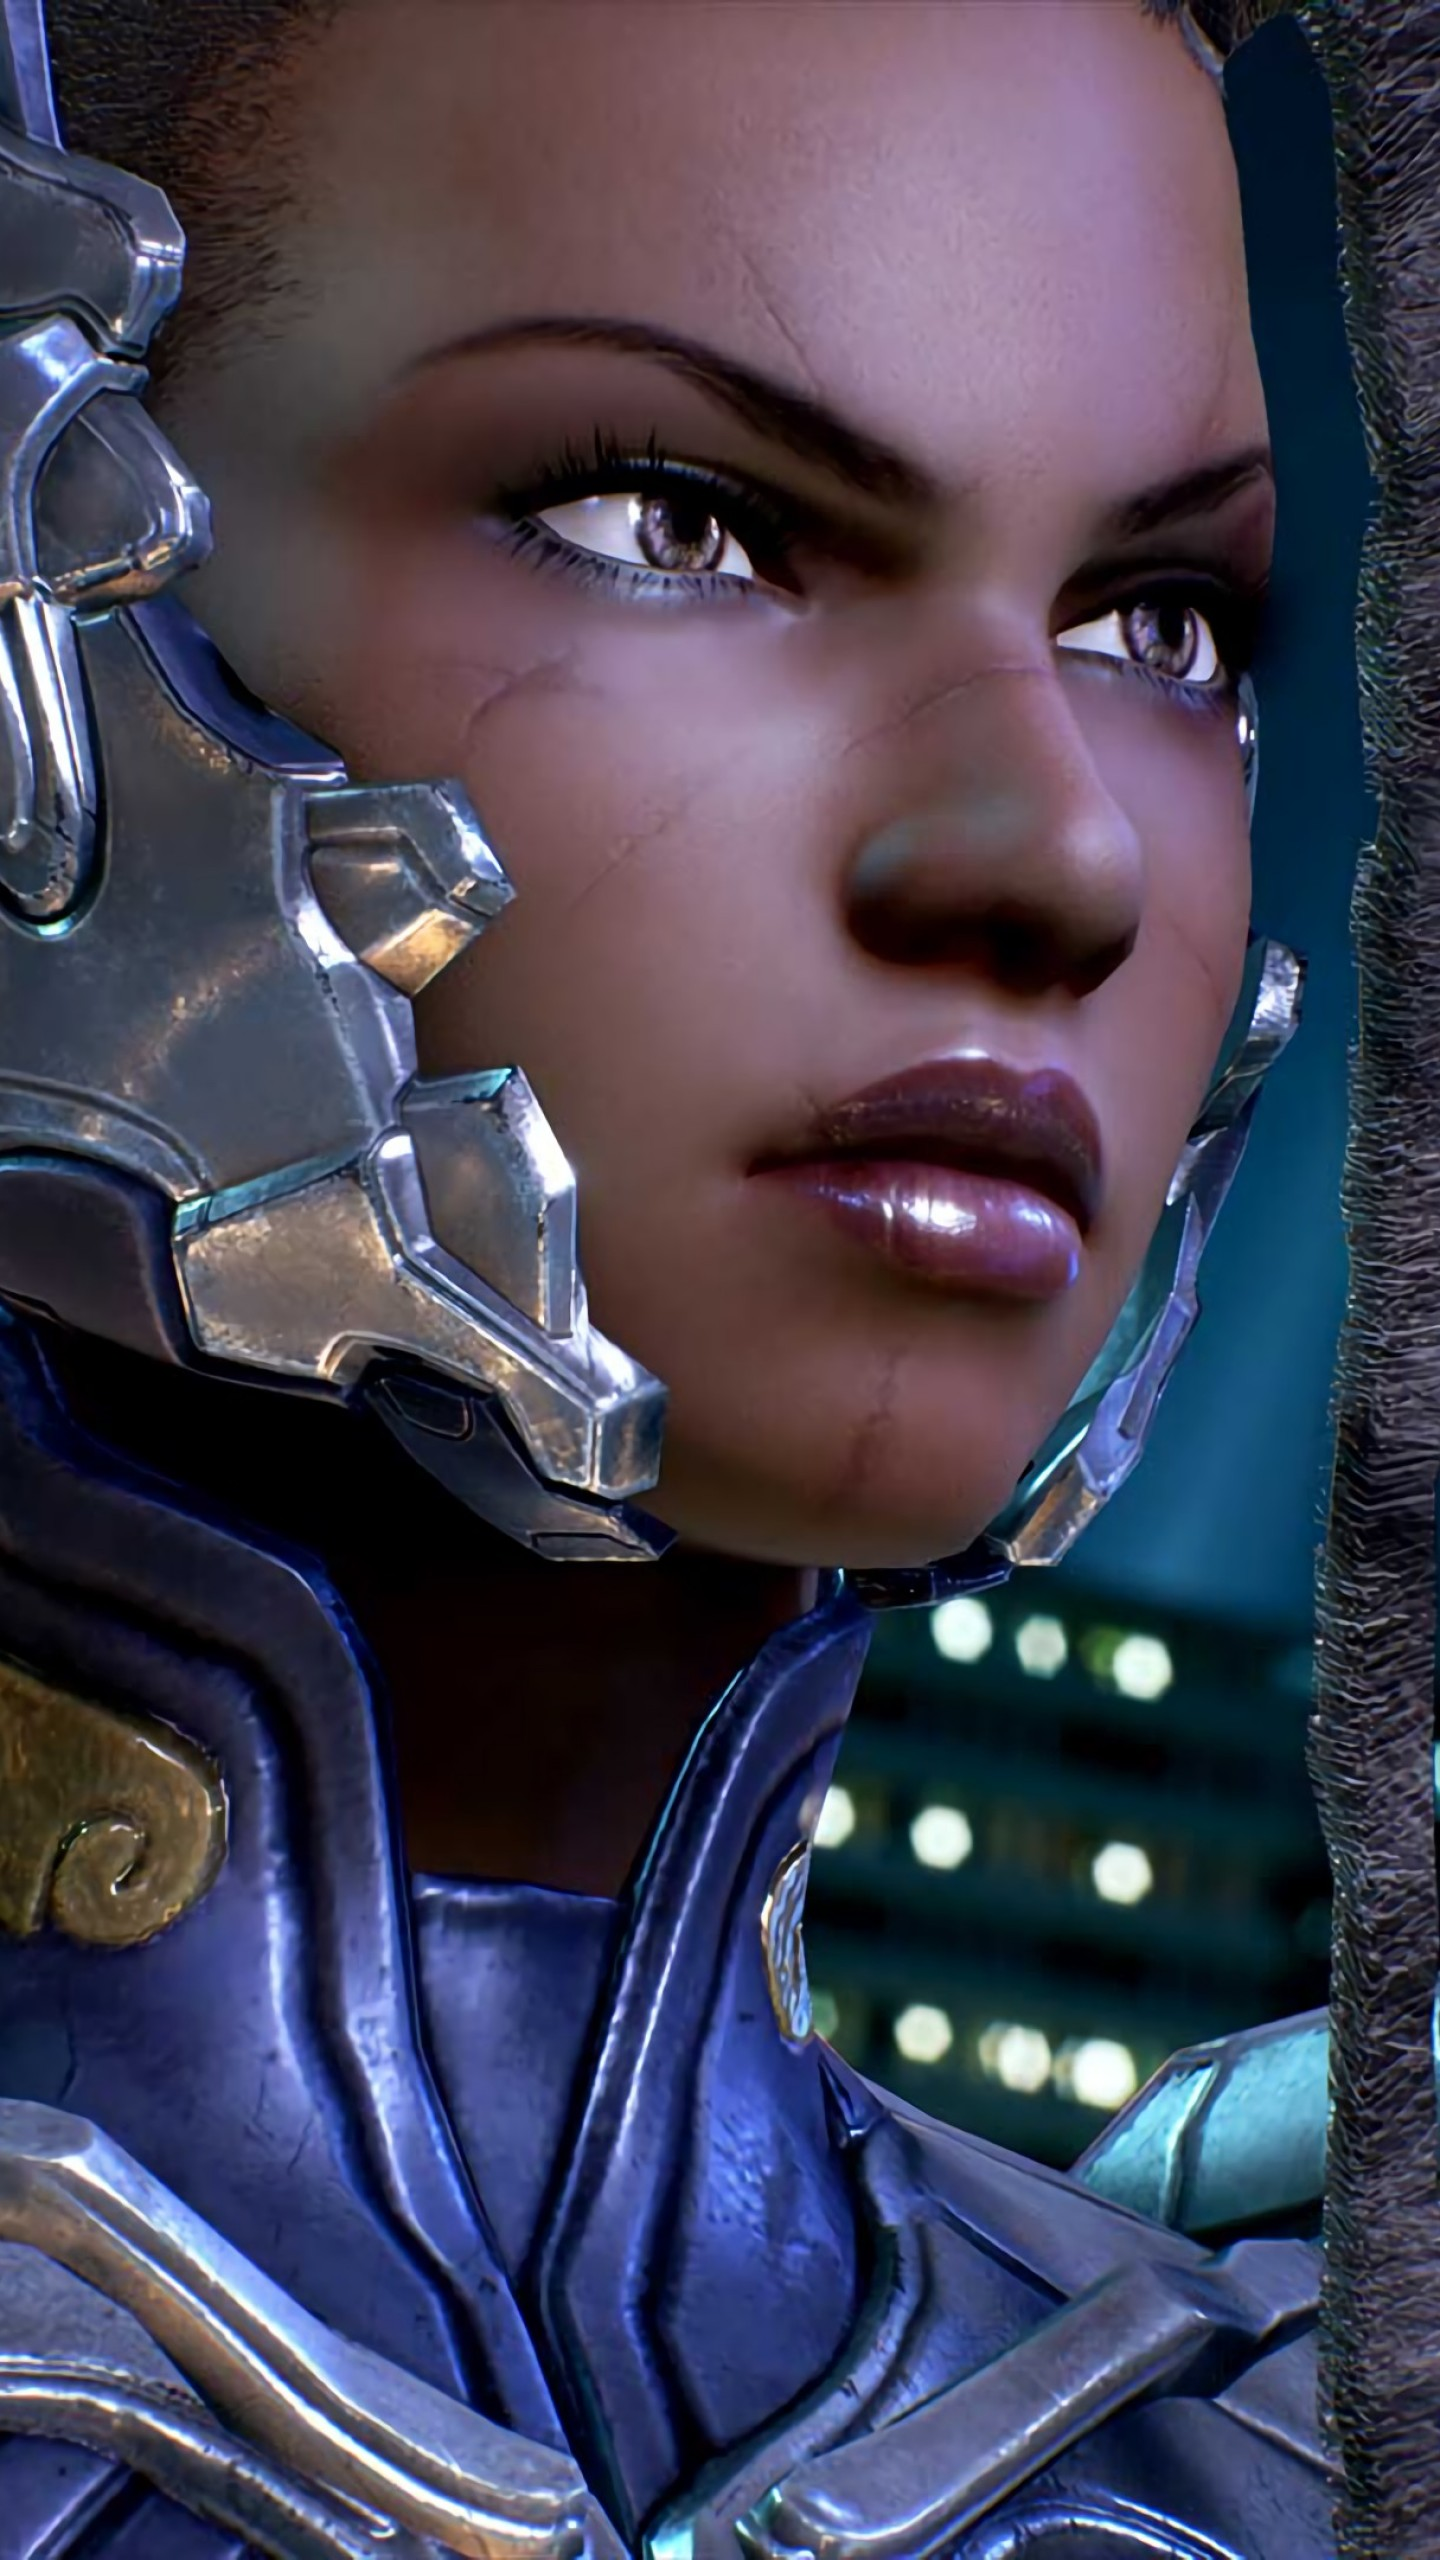 Soulcalibur Screenshot together with Fallout New Vegas Free Download Pc Full Version likewise Tekken X E Fighting Master Raven Playstation Xbox furthermore Xbox Def Jam Fight For New York P Nj S moreover Mvc Infinite E Screenshot. on xbox fighting games